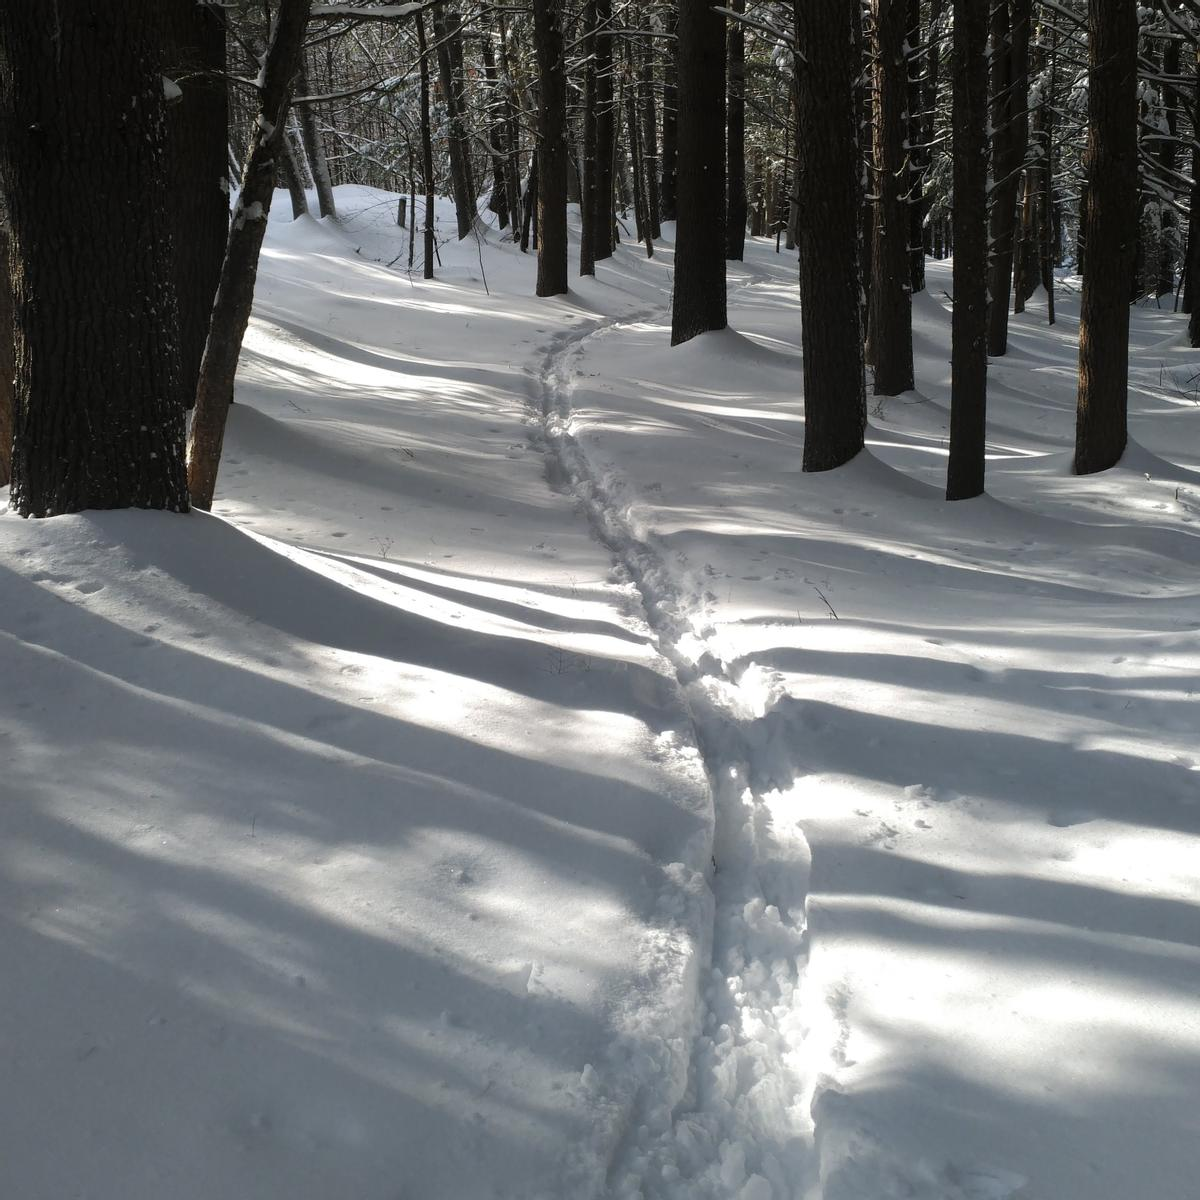 Ski track wind along a narrow trail in the woods